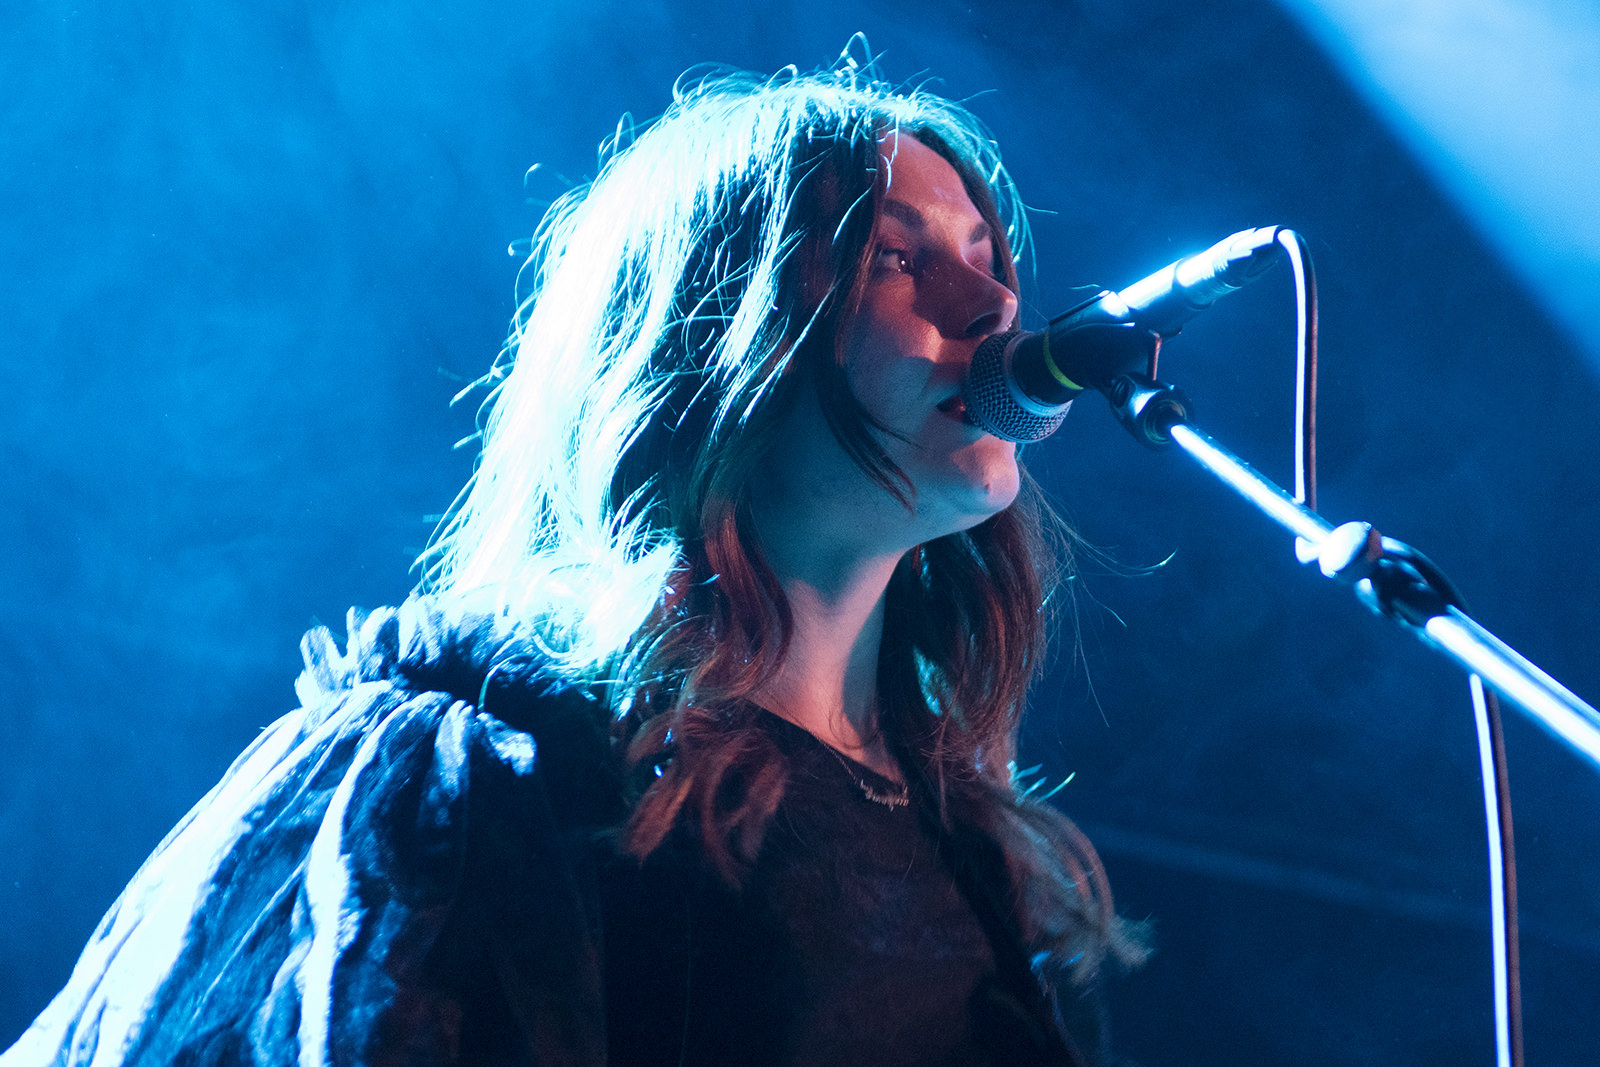 Honeyblood on stage at the QMU Glasgow on 24 October 2019